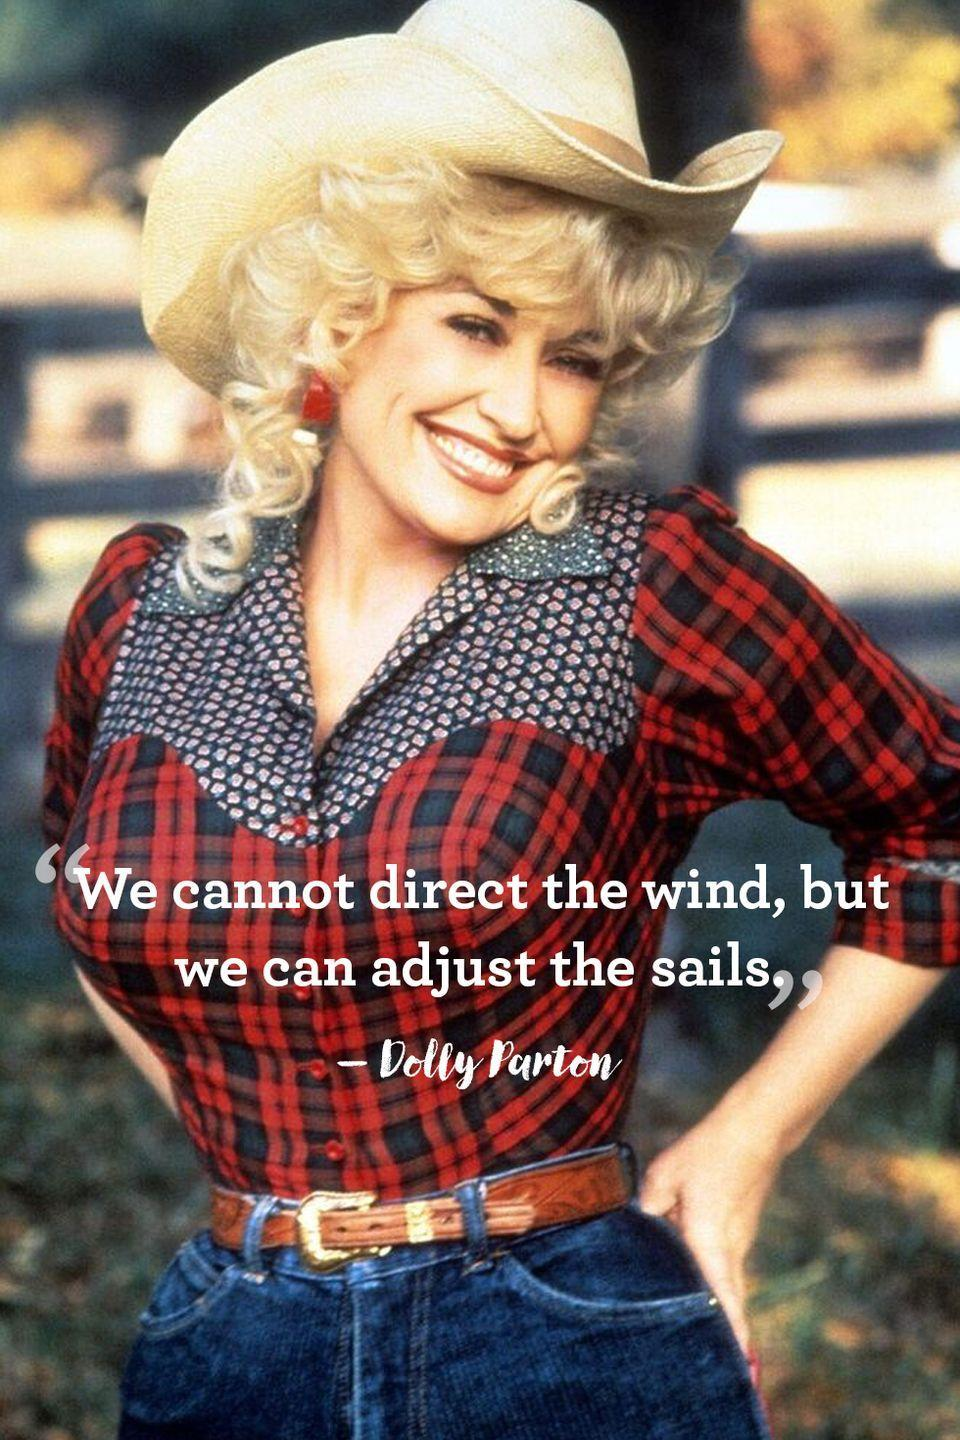 "<p>""We cannot direct the wind, but we can adjust the sails.""</p>"